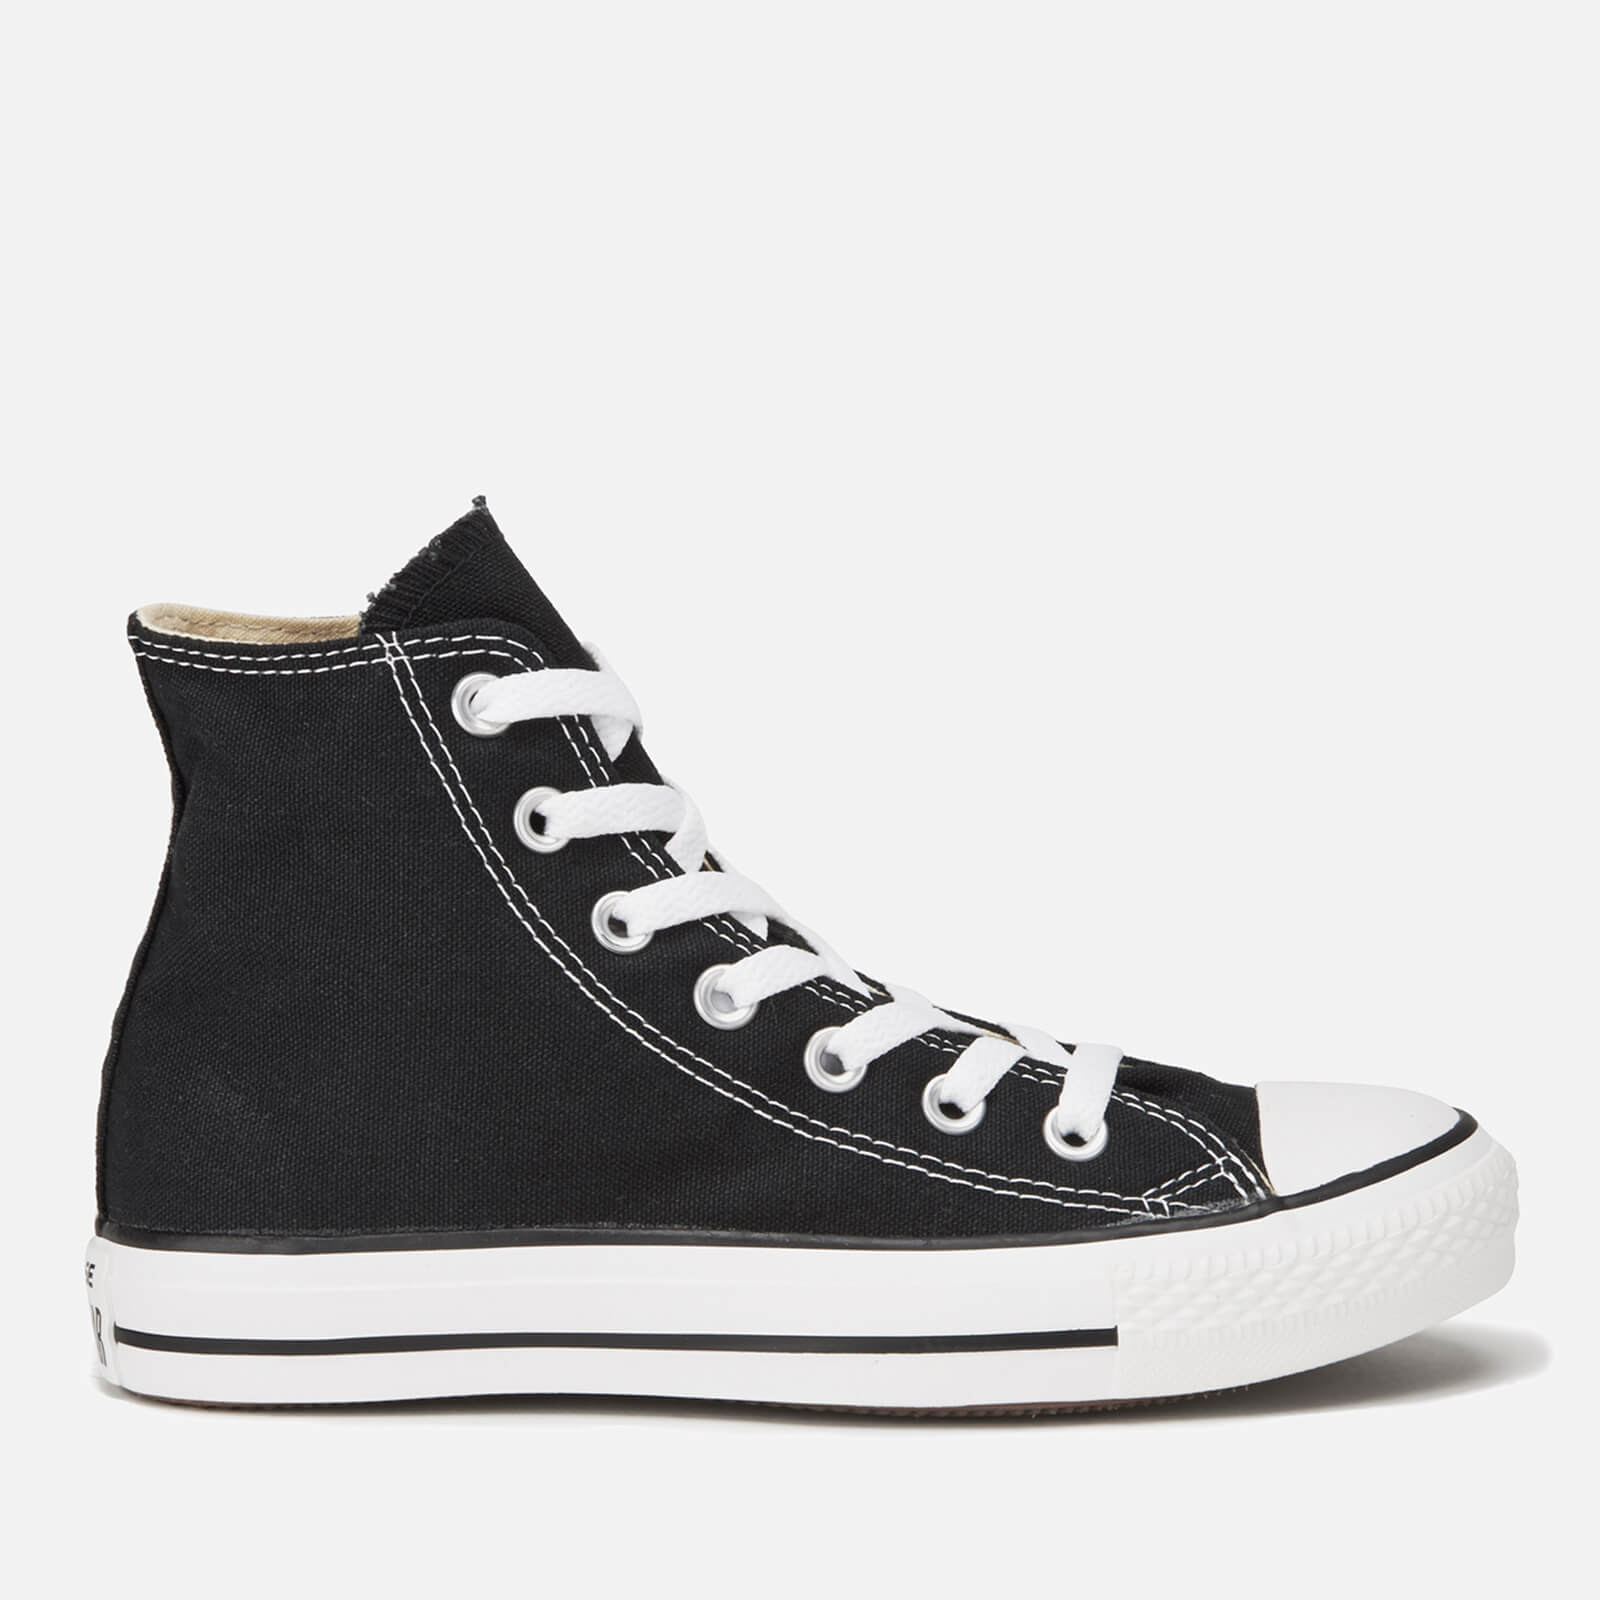 8ca9c8f8fd46 Converse All Star Canvas Hi-Top Trainers - Black